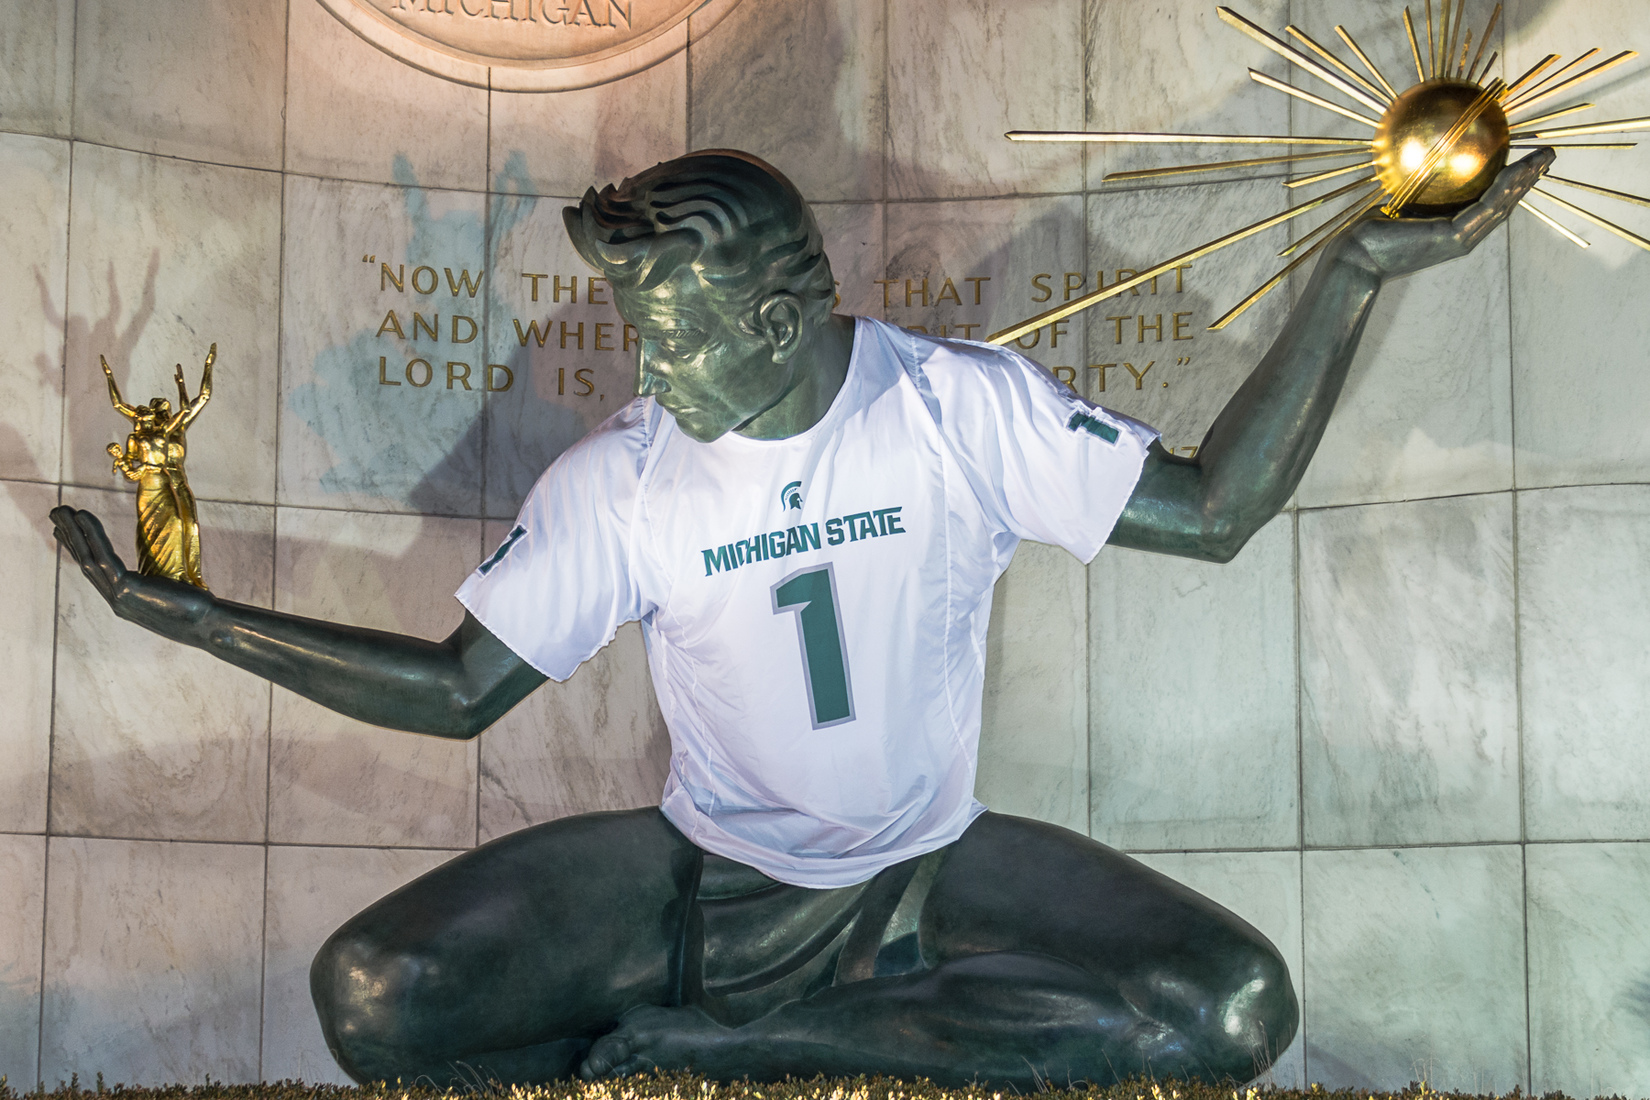 Detroit Sports Spirit of Detroit - Michigan State University